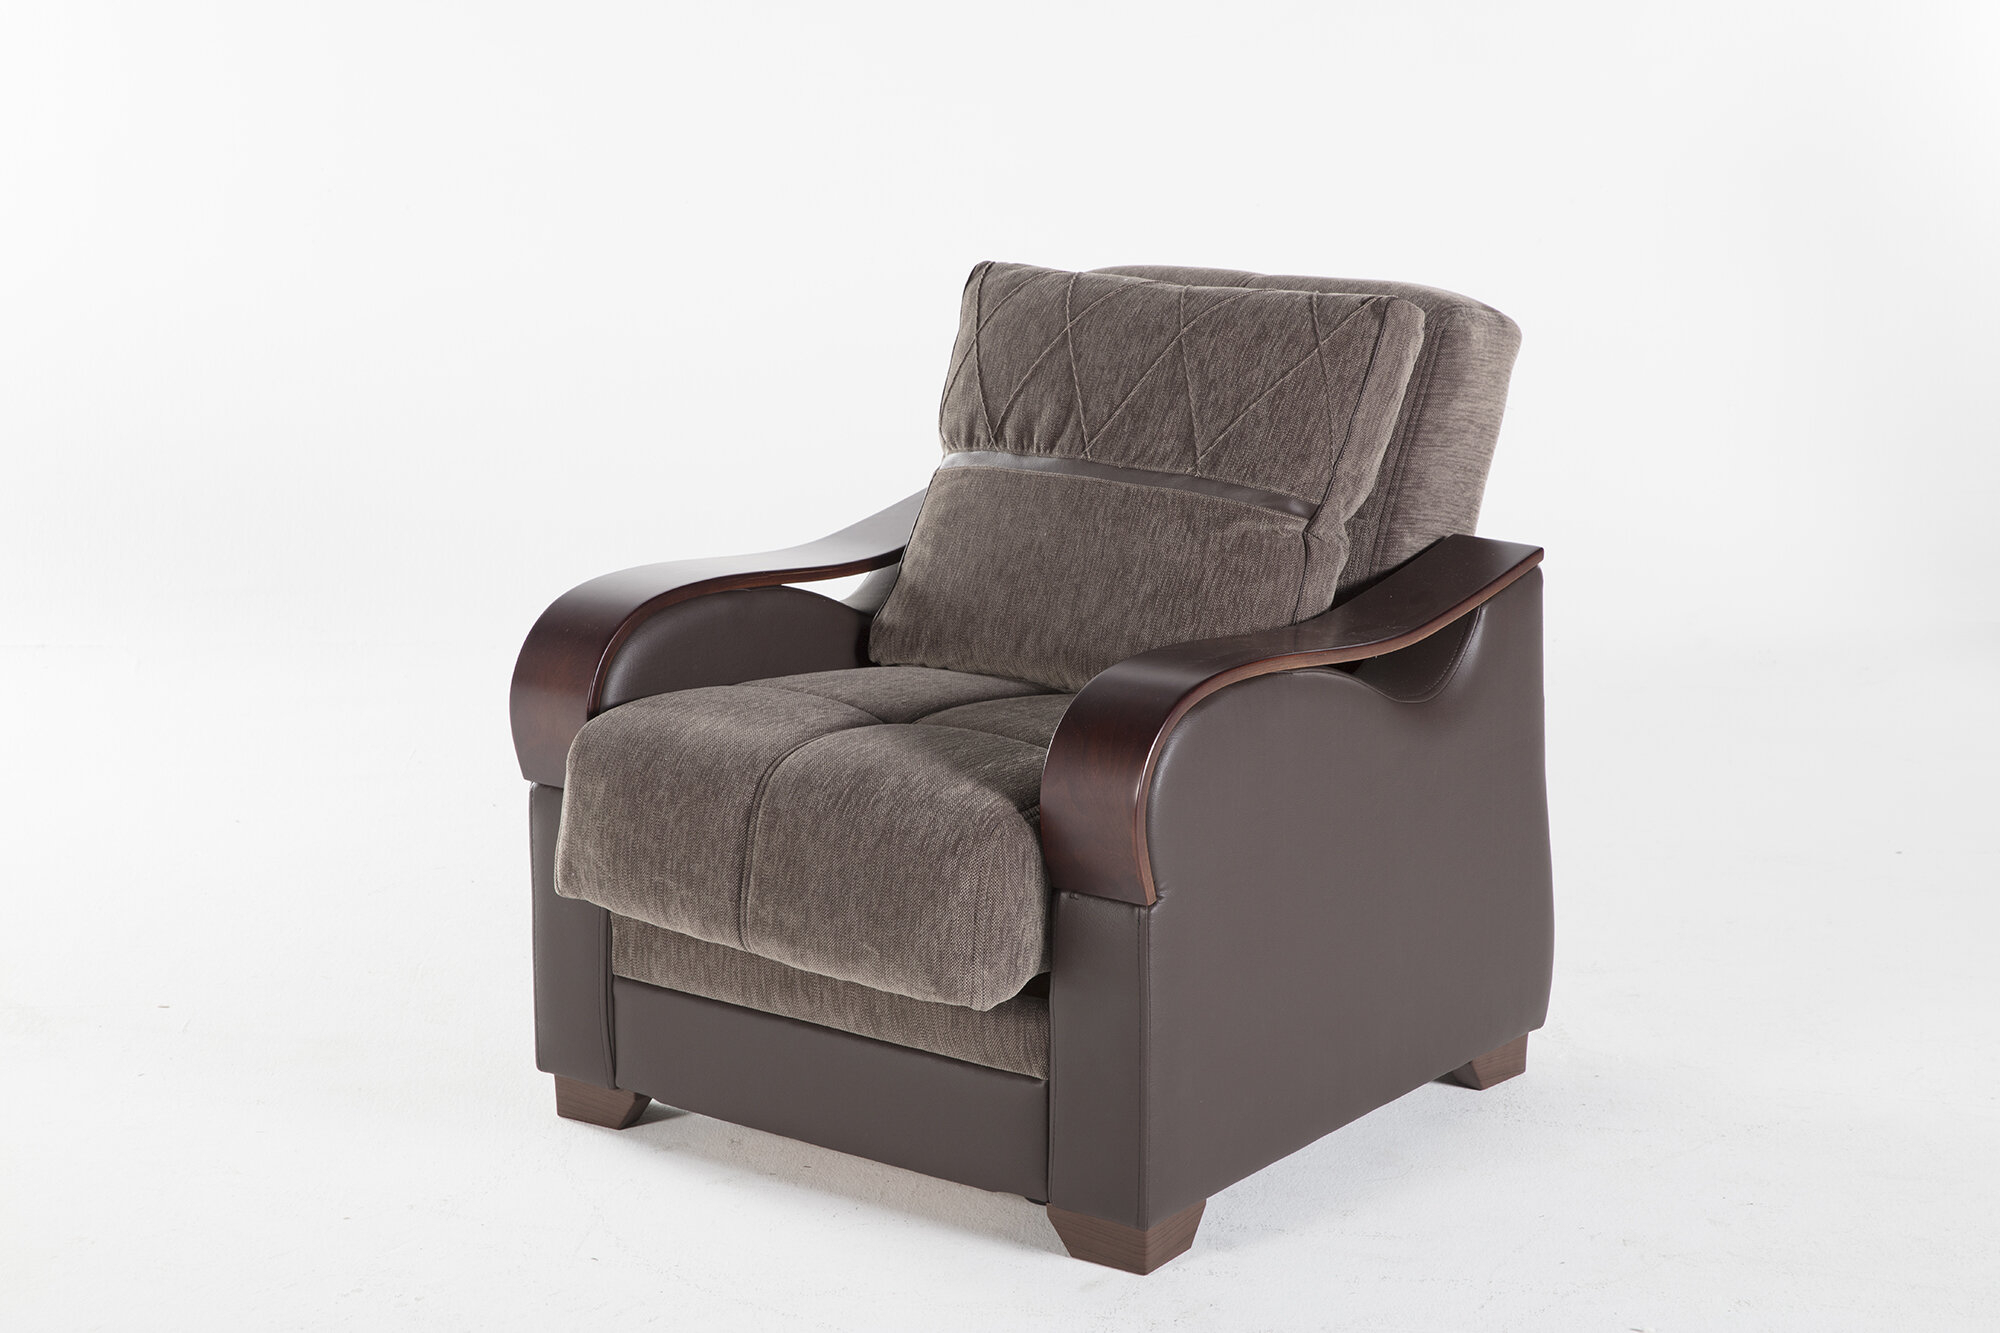 Dougie Convertible Chair Throughout Blaithin Simple Single Barrel Chairs (View 5 of 15)